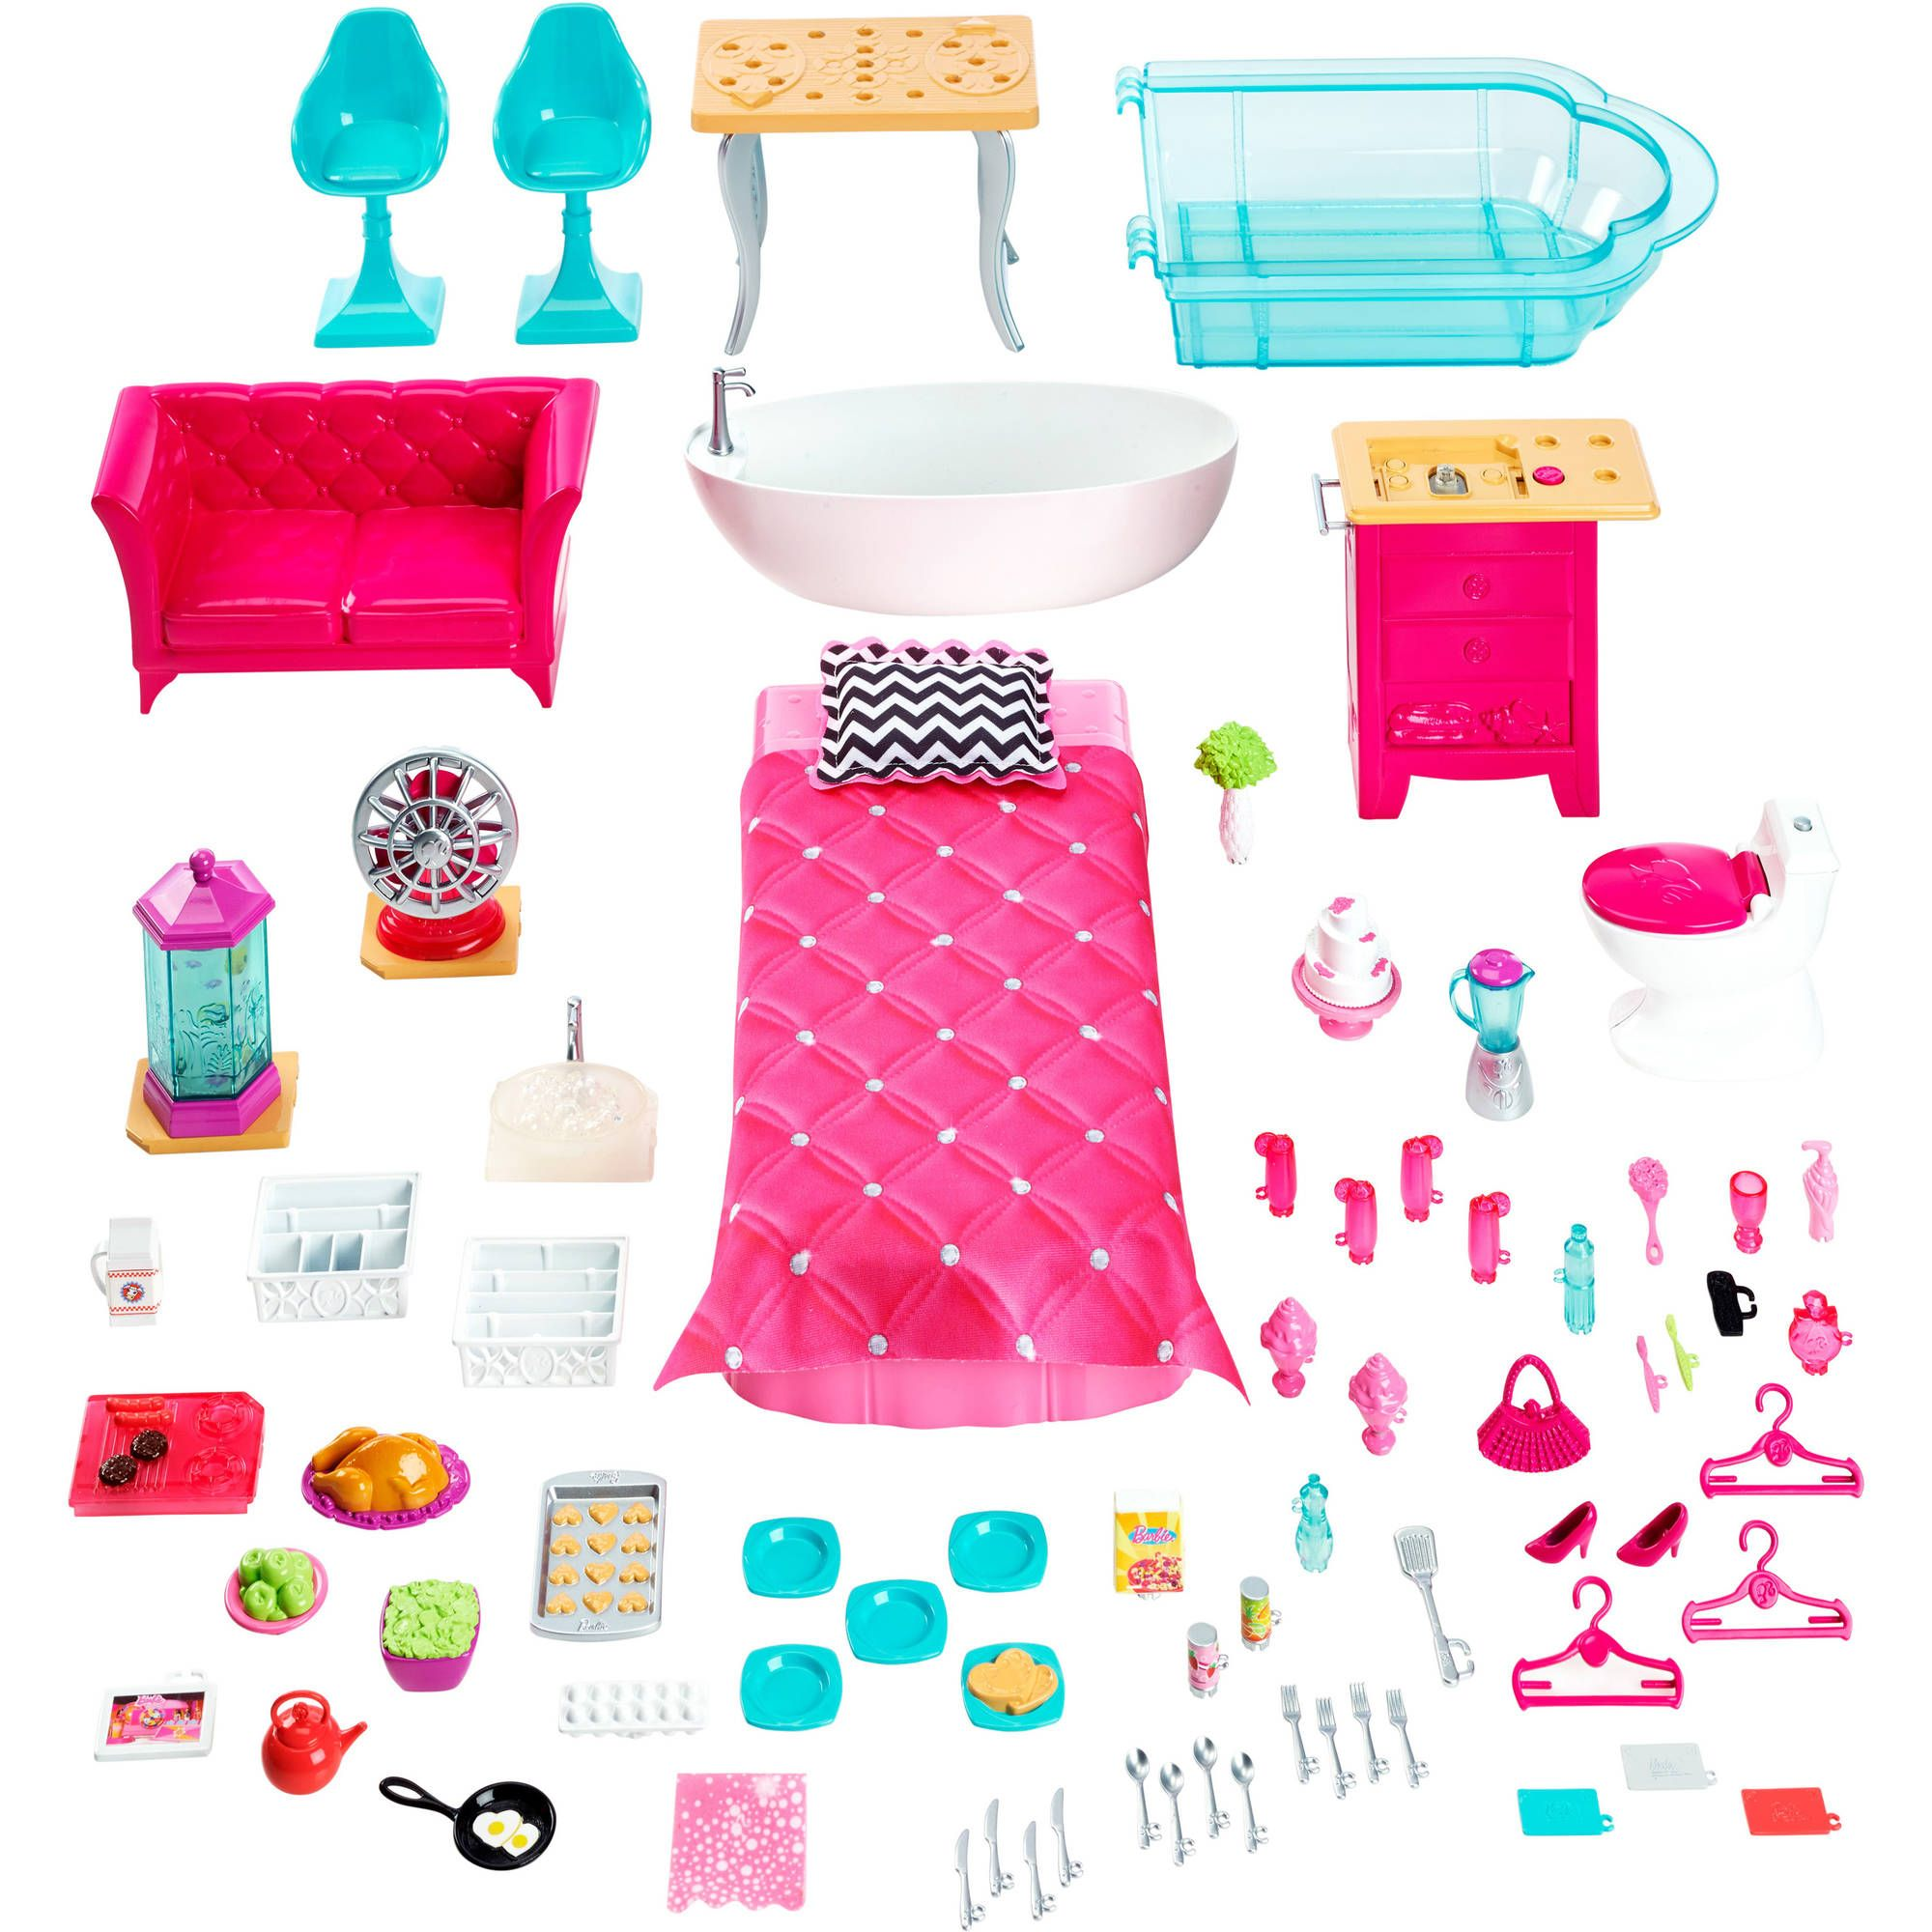 Barbie Dreamhouse  Walmartcom Barbie Accessoriesdiy Dollhousebarbie